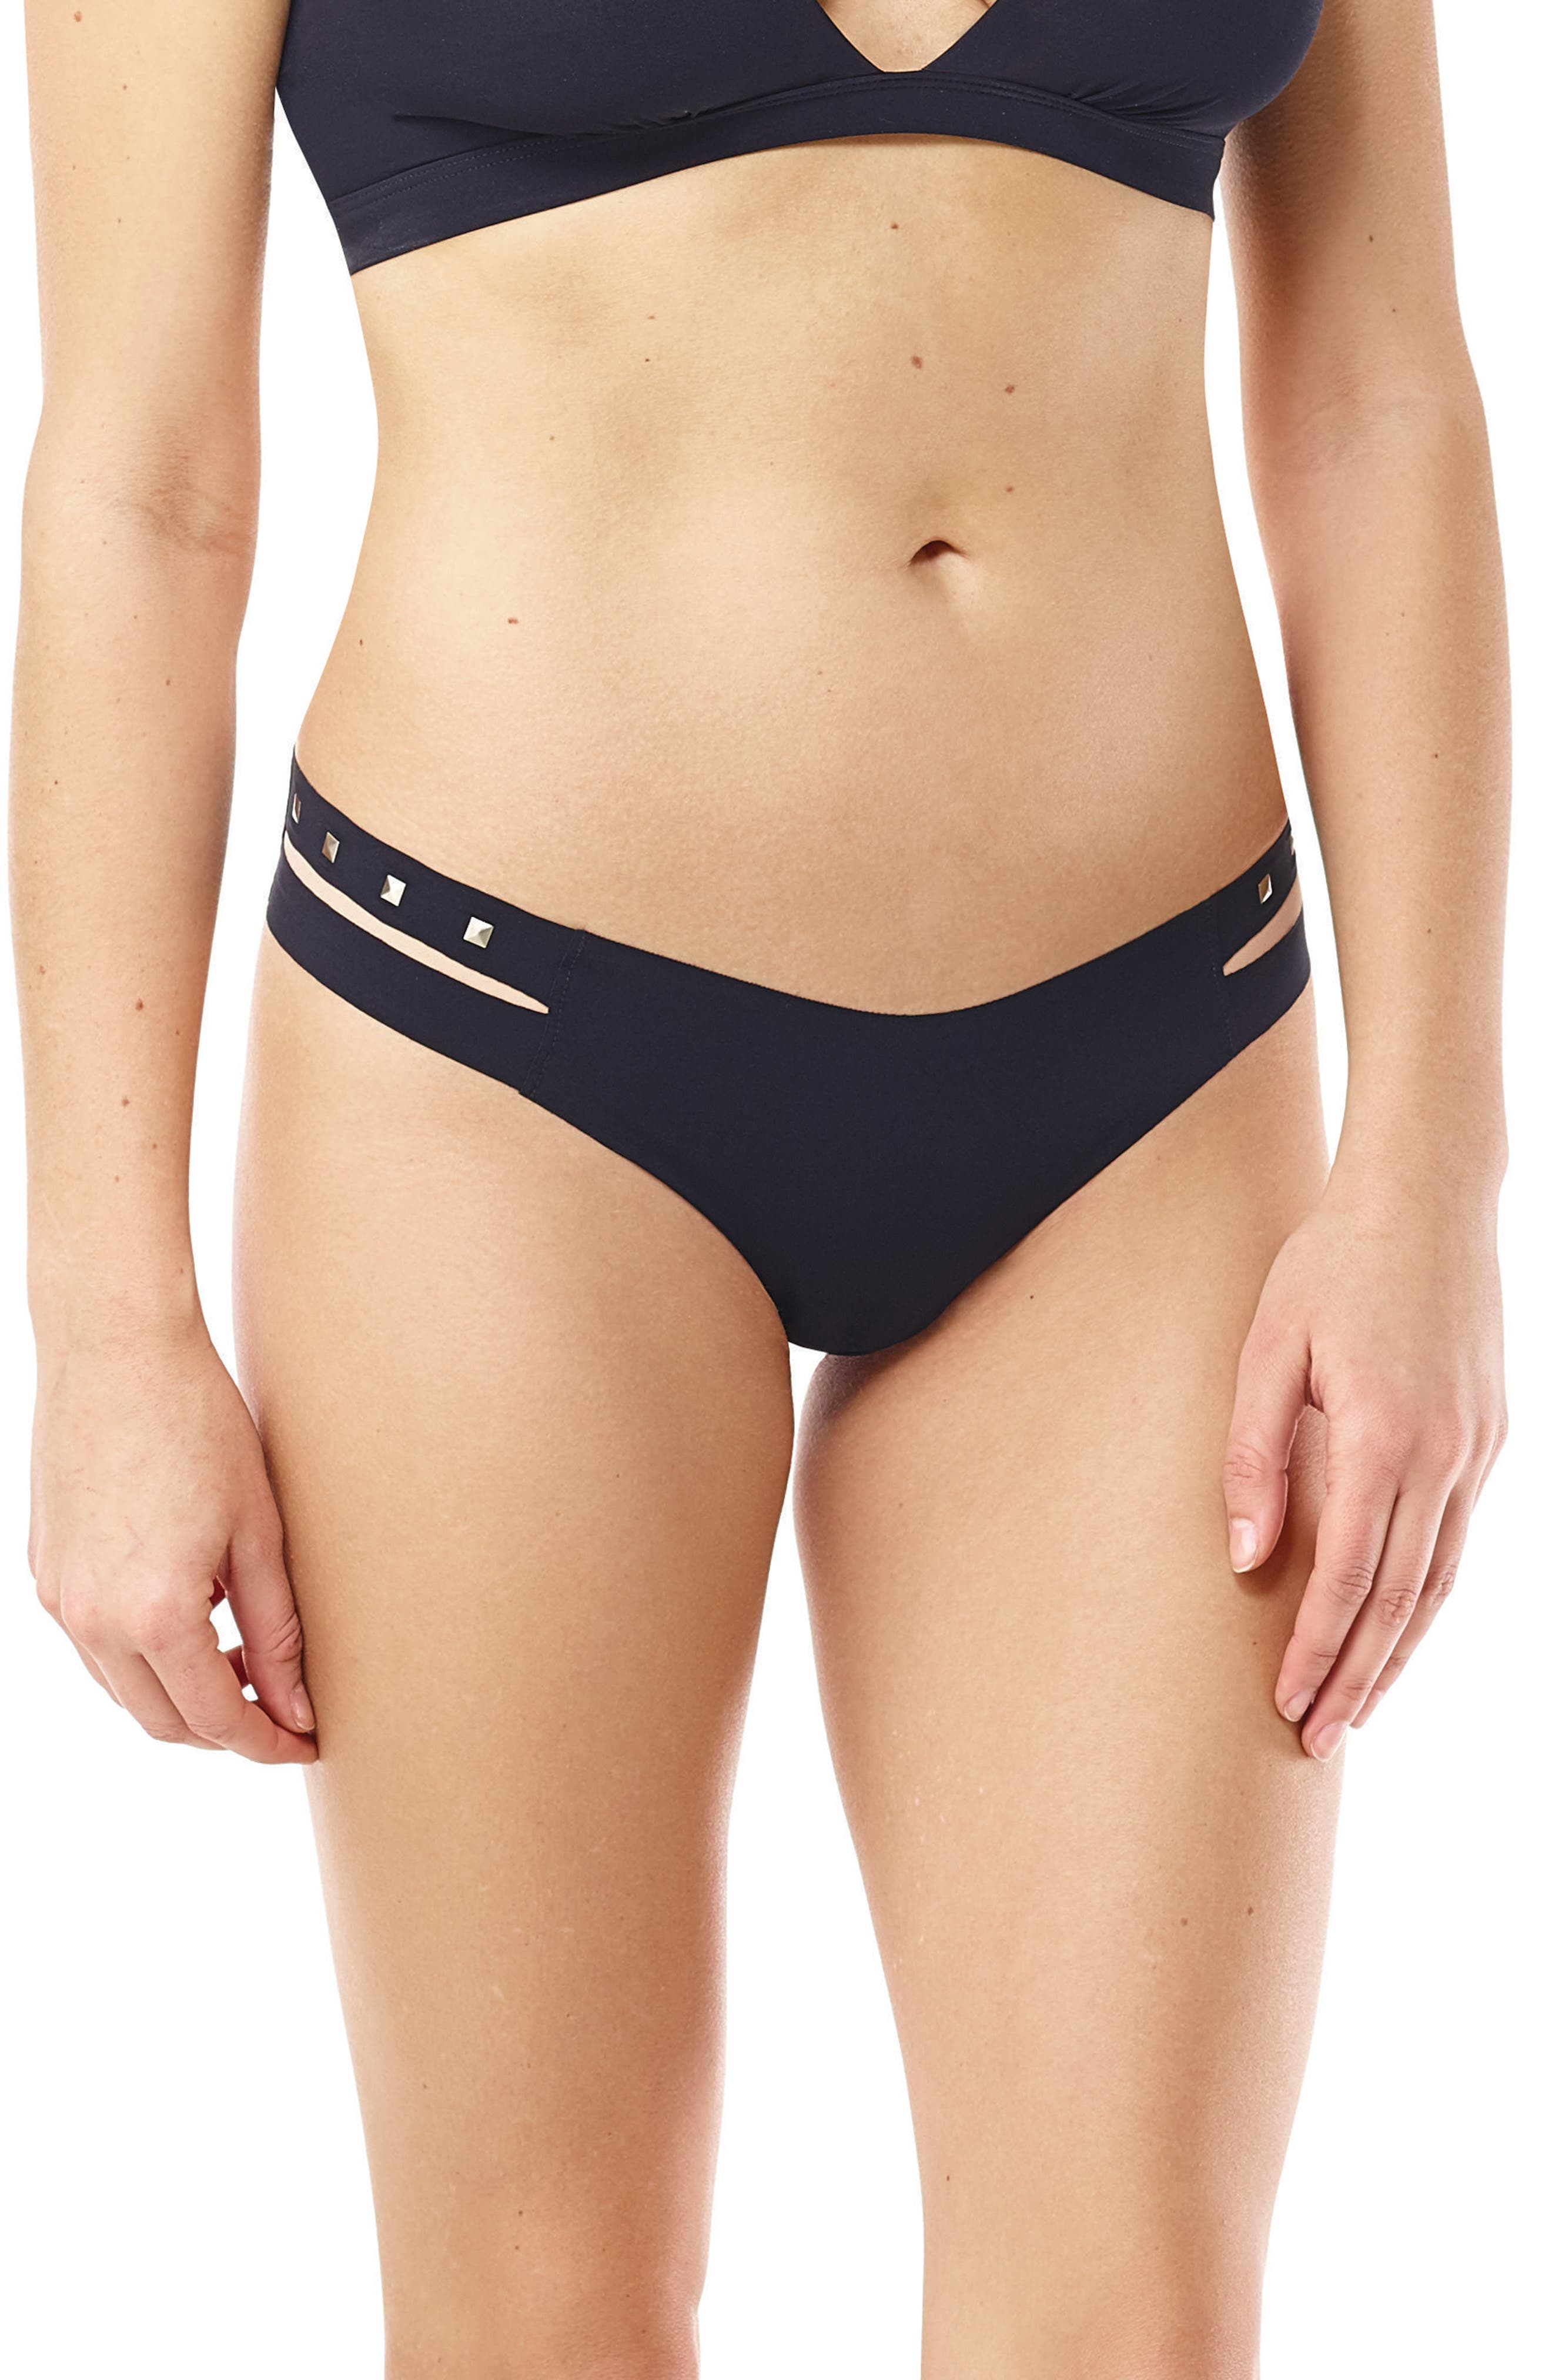 Stripped Studded Thong,                         Main,                         color, Black